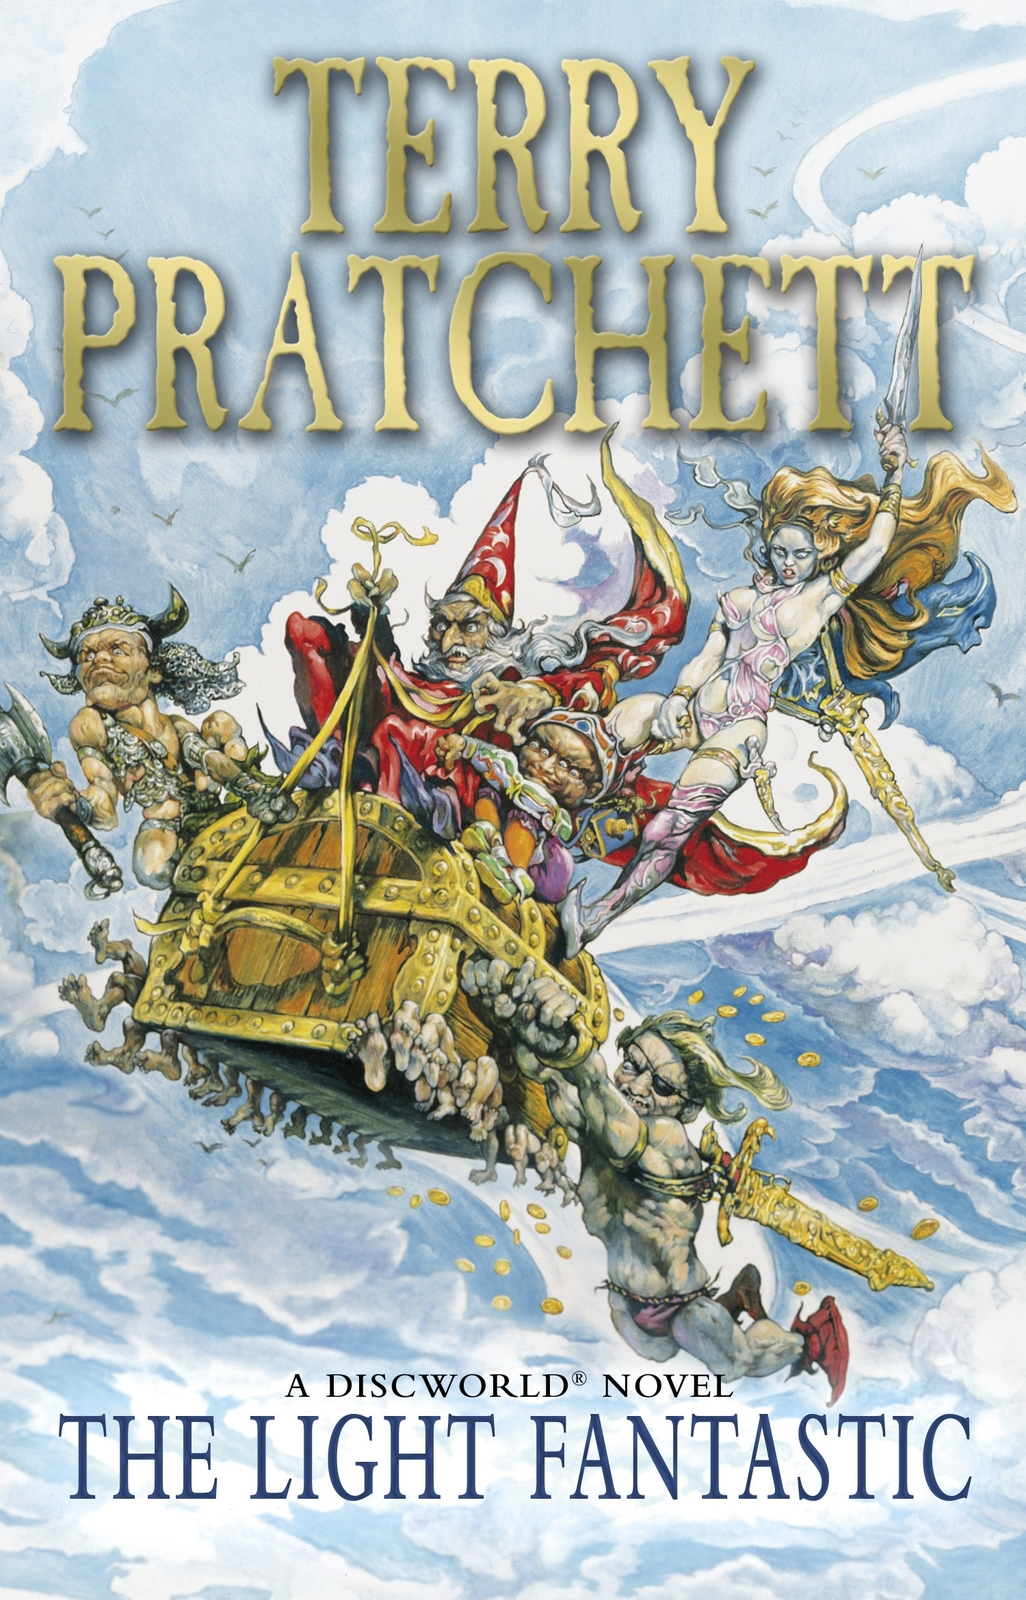 The Light Fantastic (Discworld 2 - Rincewind) (UK Ed.) by Terry Pratchett image